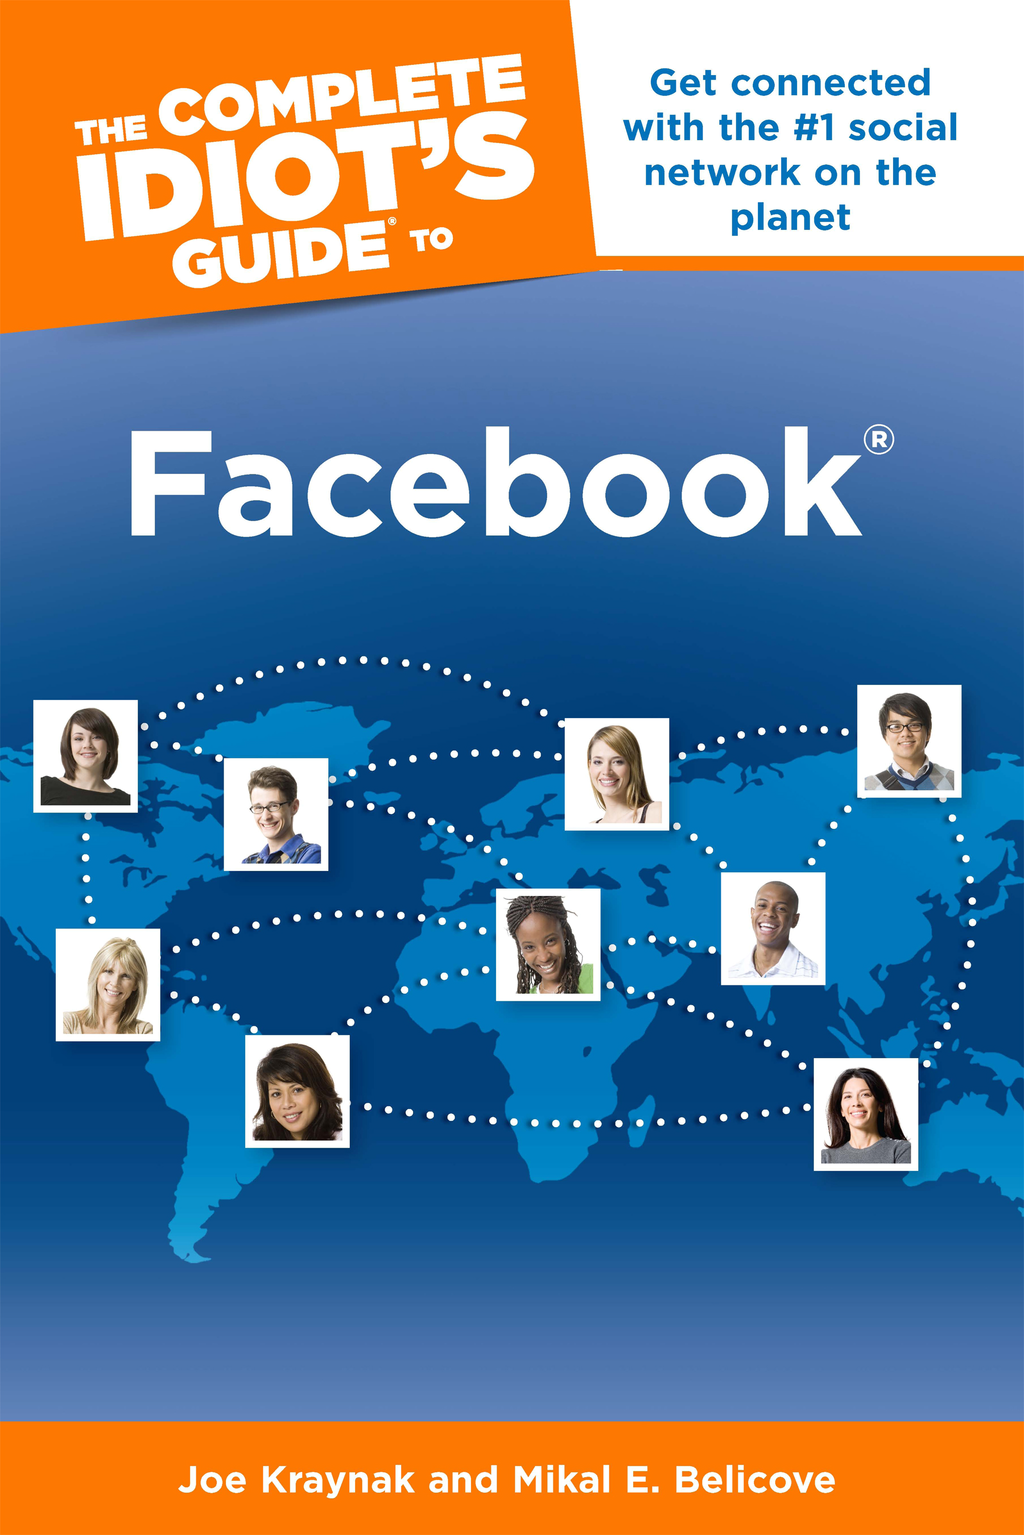 The Complete Idiot's Guide to Facebook, 3E By: Joe Kraynak,Mikal E.Belicove